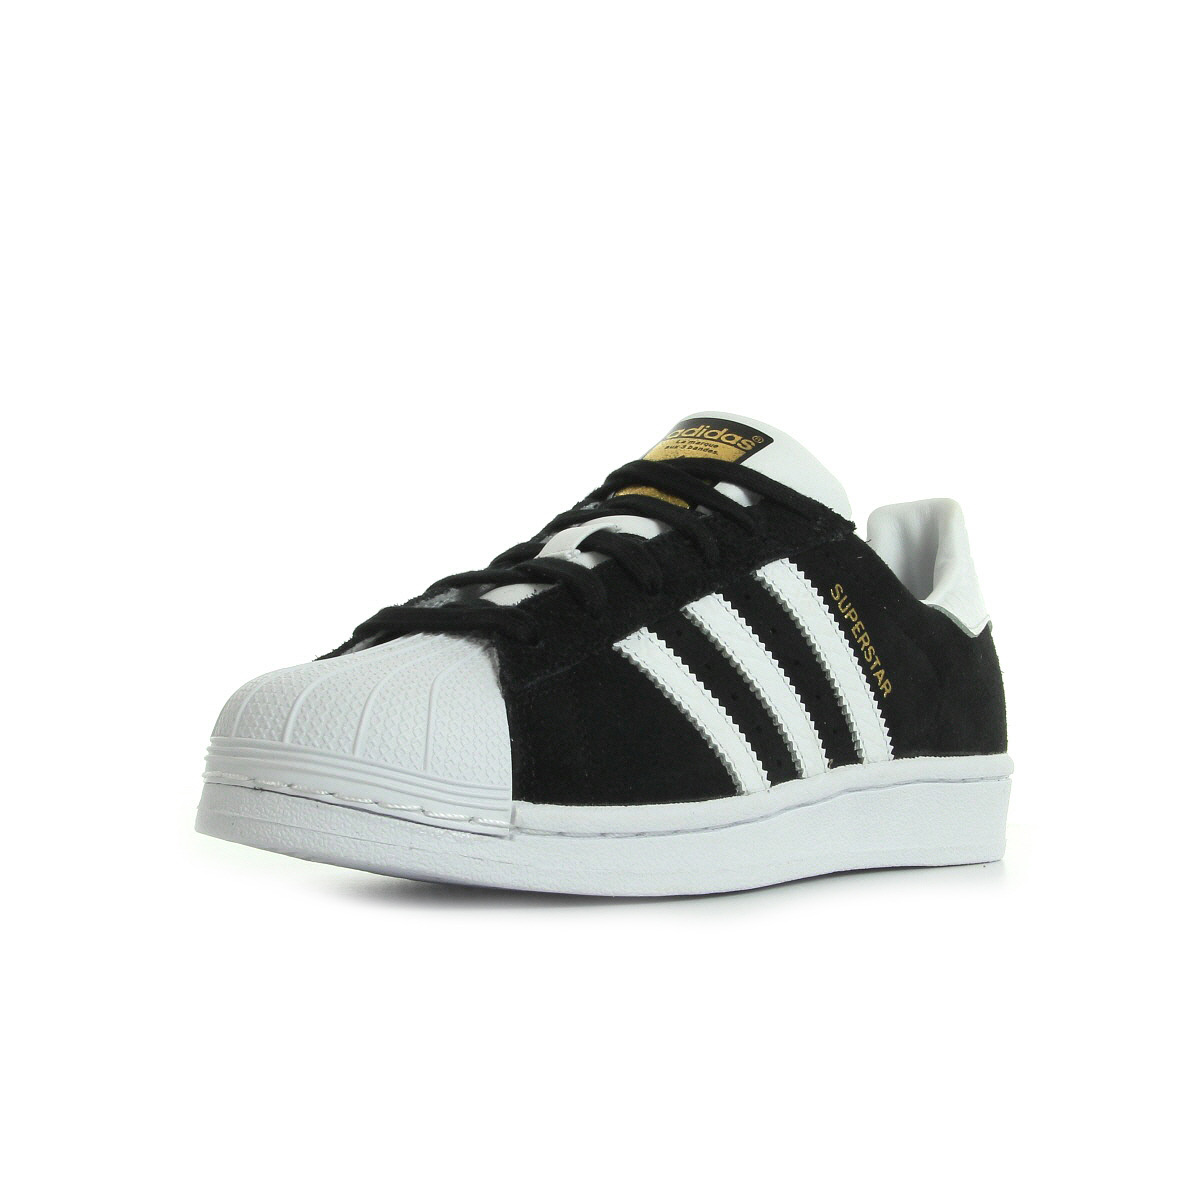 Adidas Superstar East River Rivalry Femme